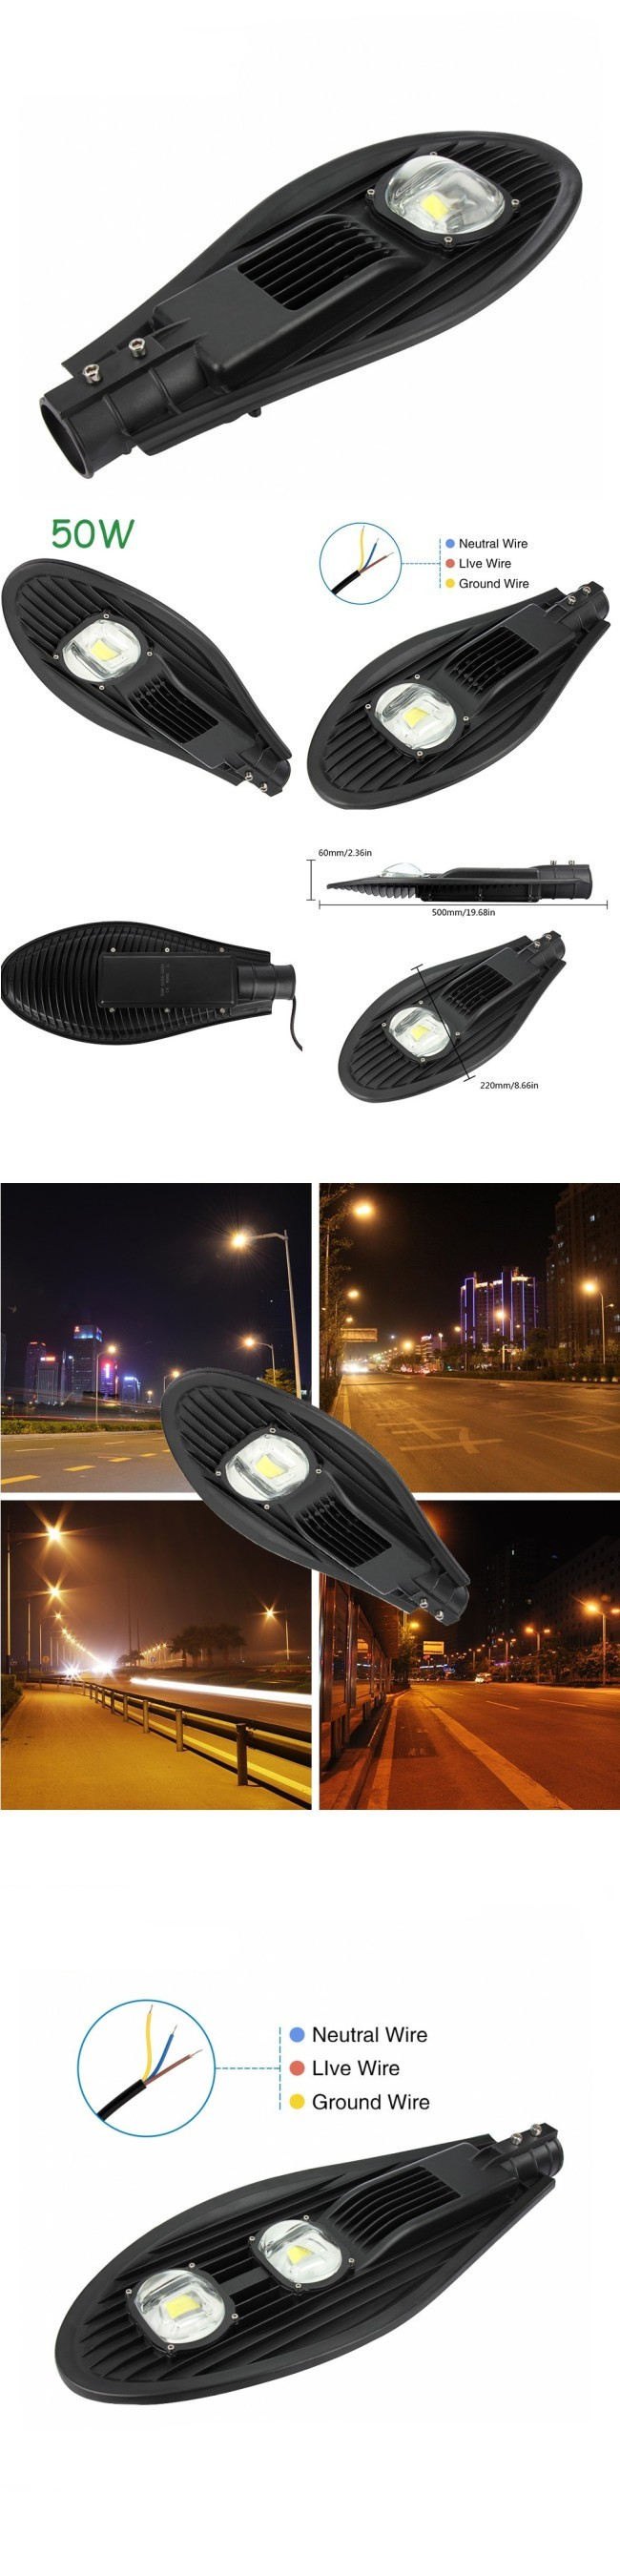 2017 New High Power 200W LED Street Light 20000lm 10kv Surge Protection